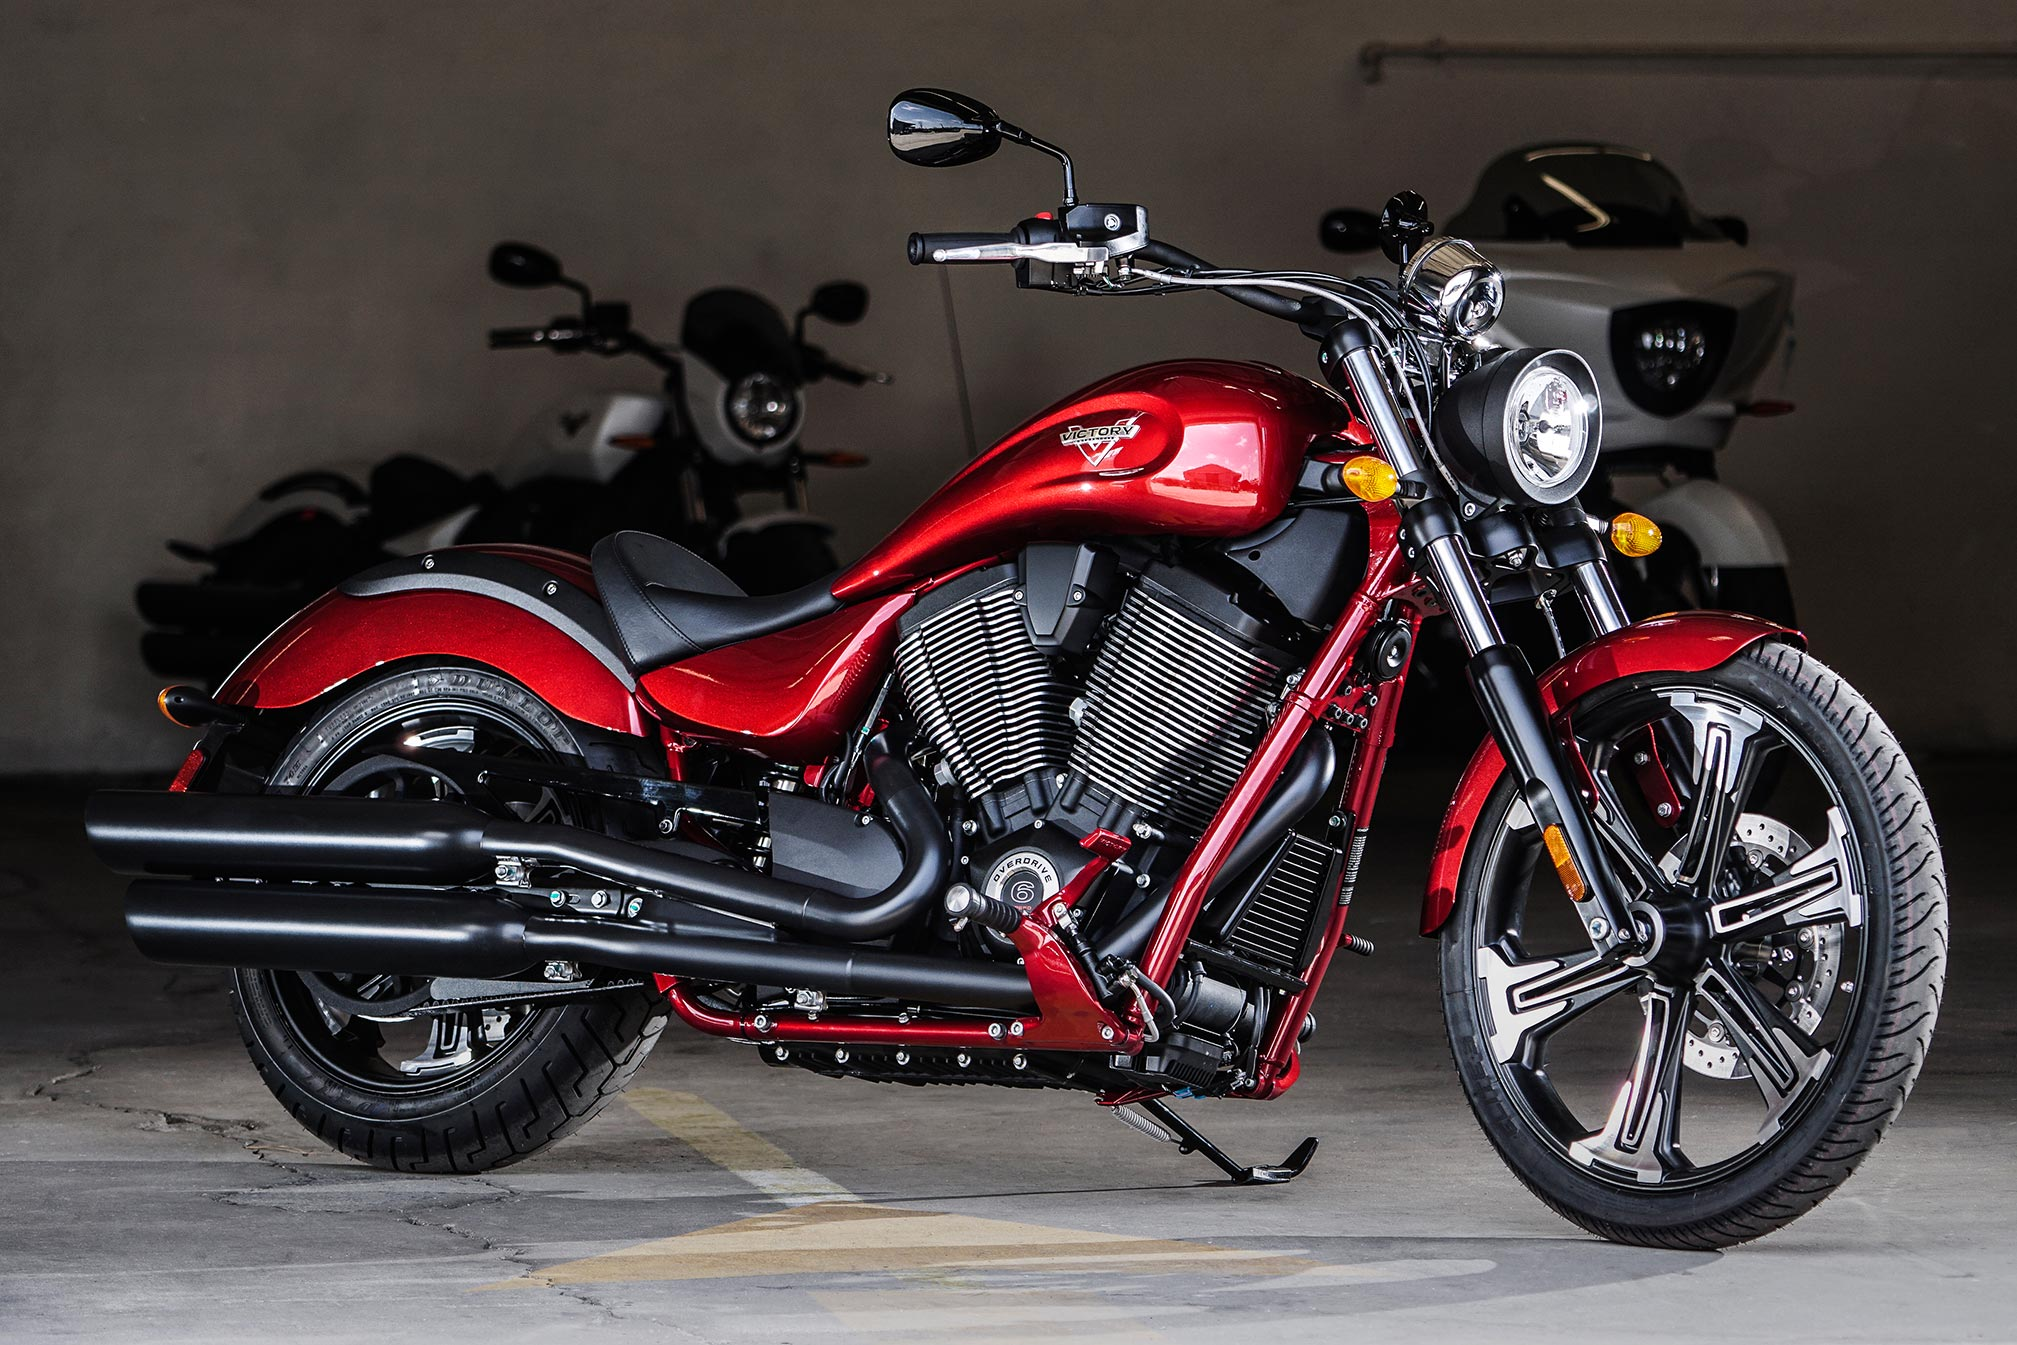 victory vegas motorcycles totalmotorcycle